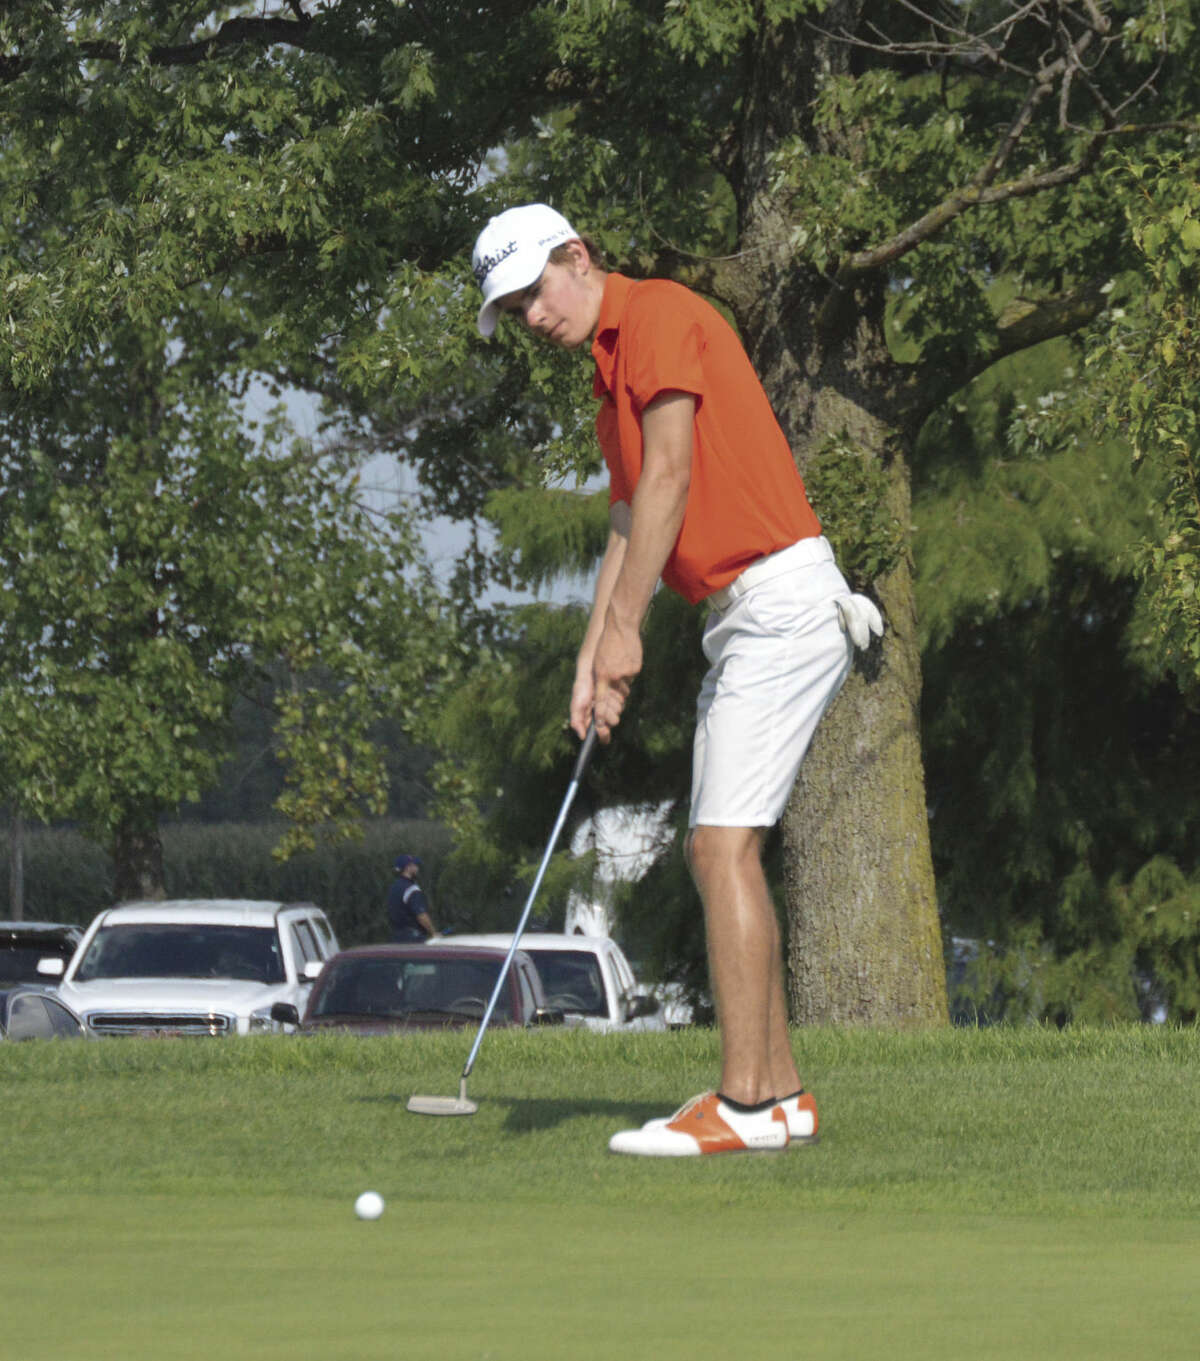 Edwardsville junior Tanner White watches his putt roll toward the hole on the No. 9 green.